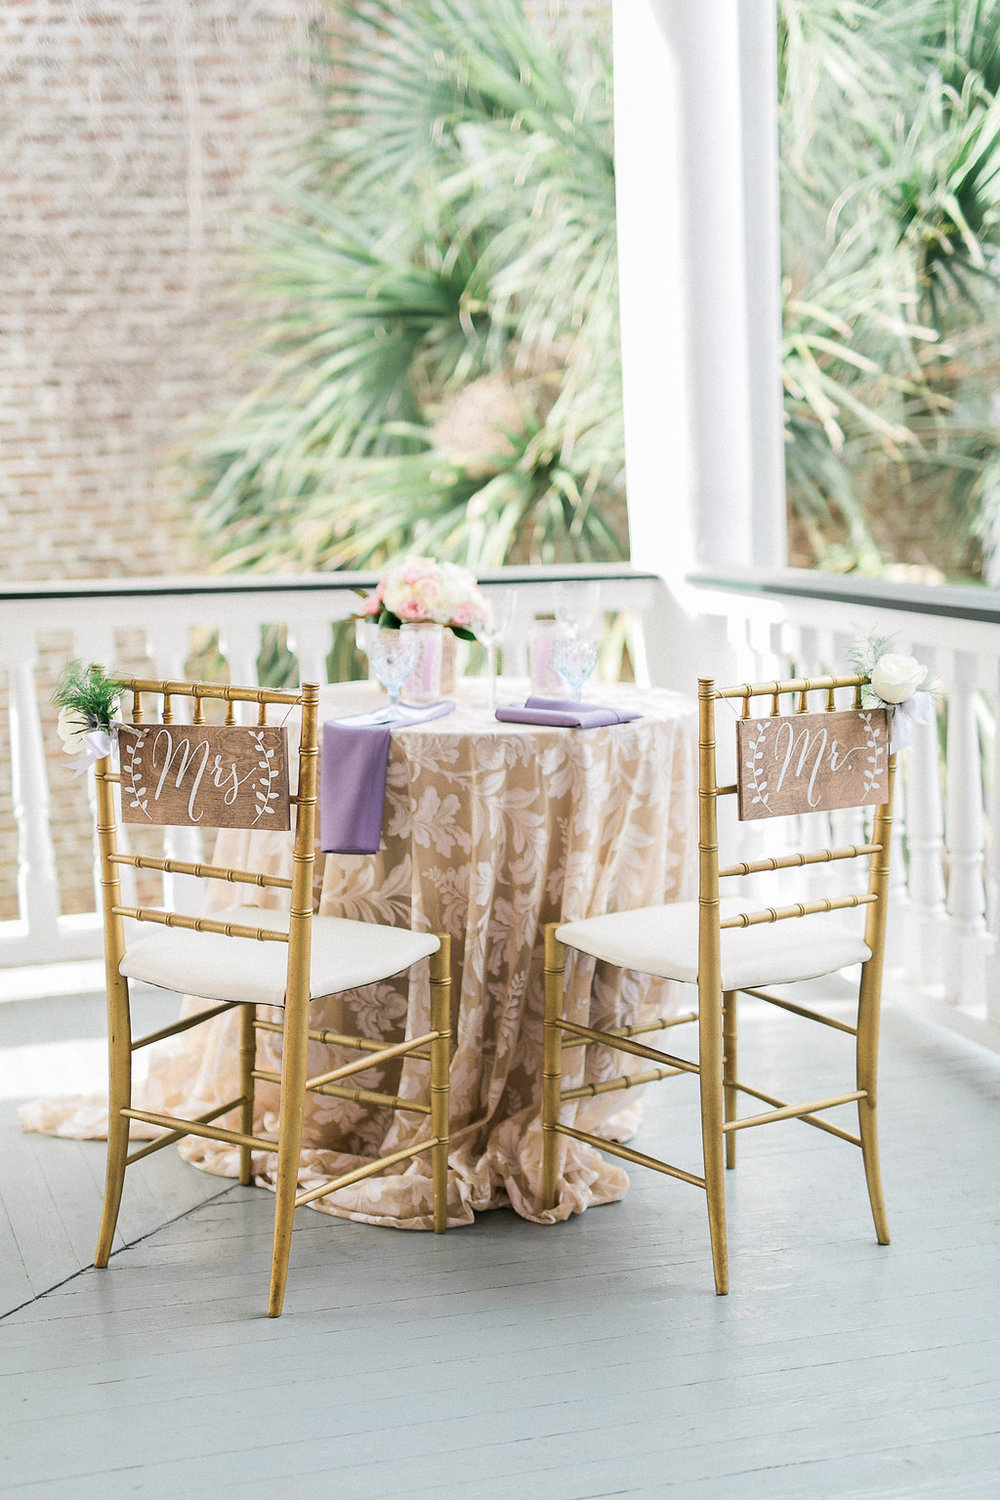 charleston spring brunch elopement pop up wedding planners at the parsonage - atlanta, greenville wedding planners - scarlet plan _ design (85).jpg